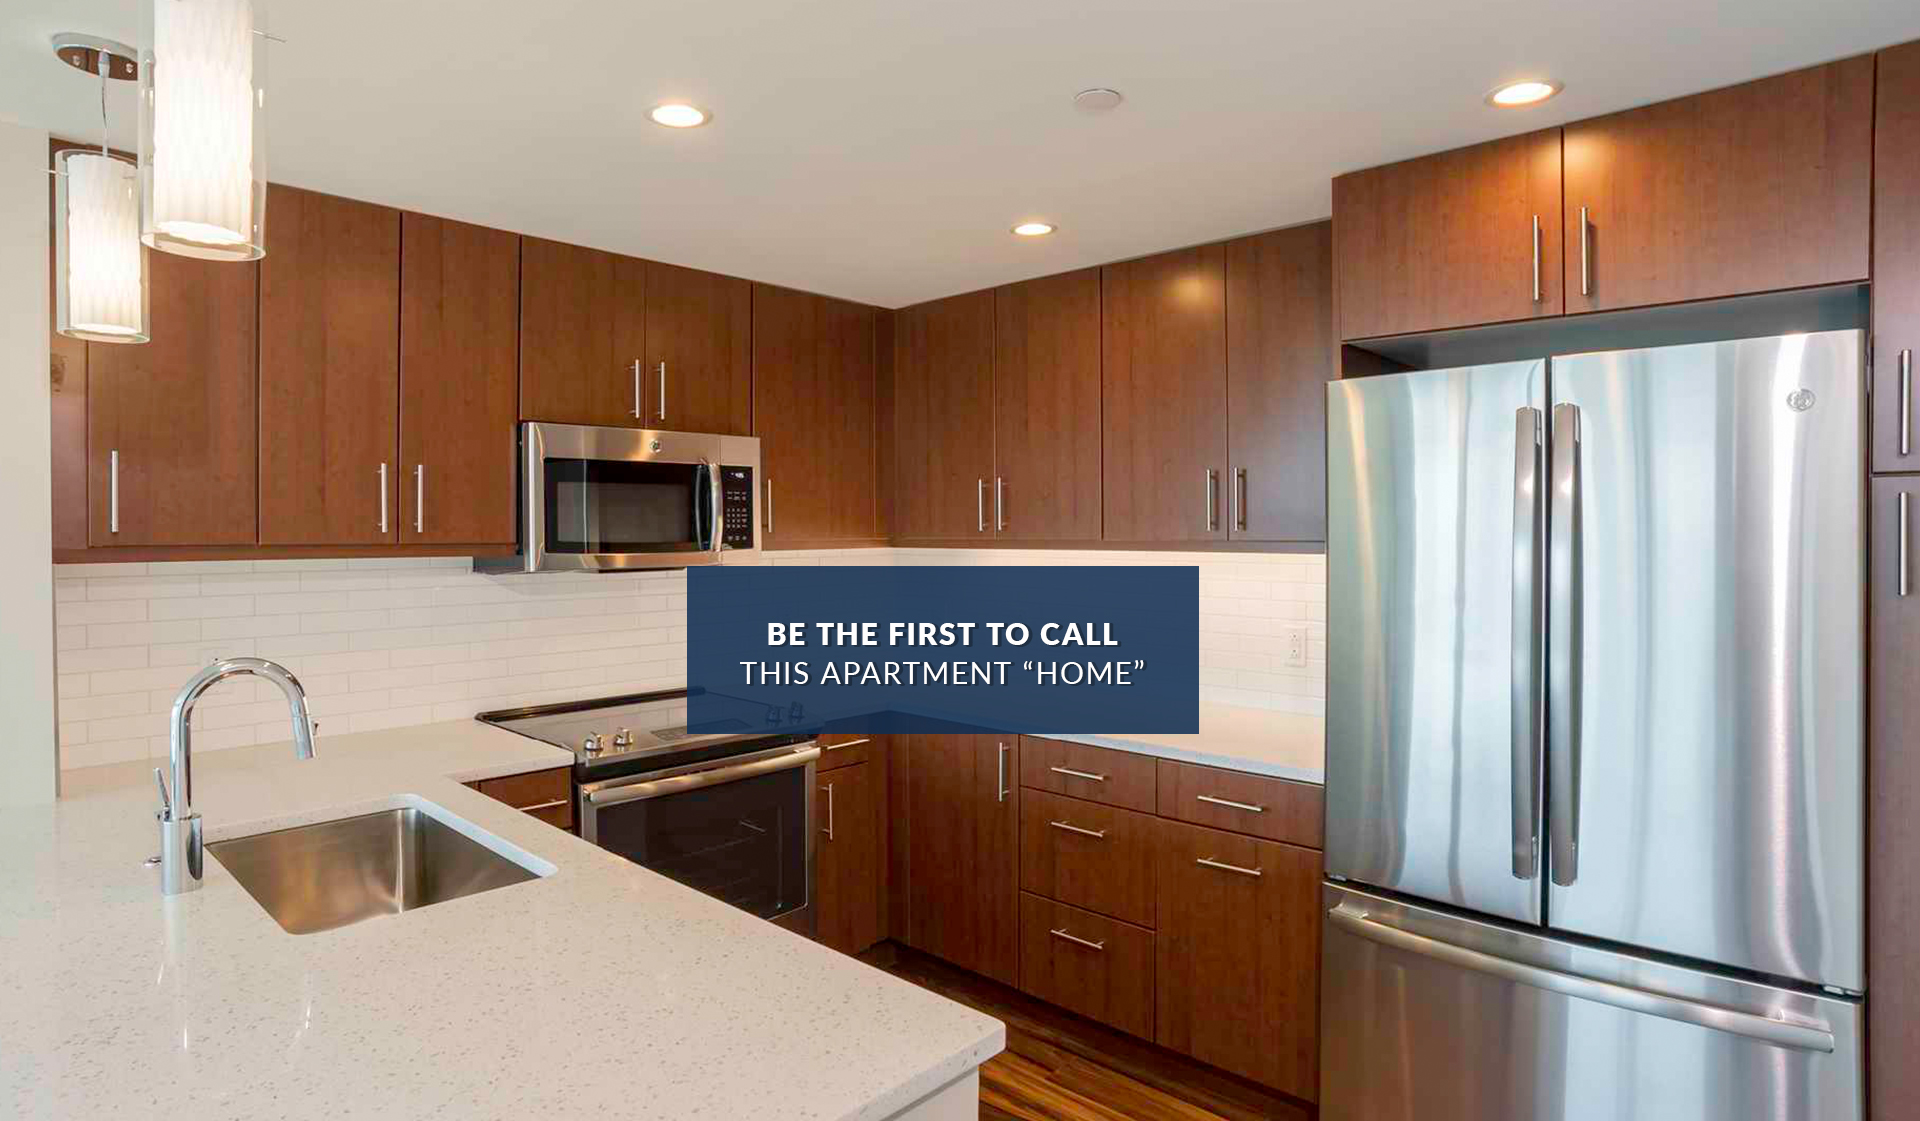 Park Towne Place Premier Apartment Homes - Kitchen - Philadelphia, PA